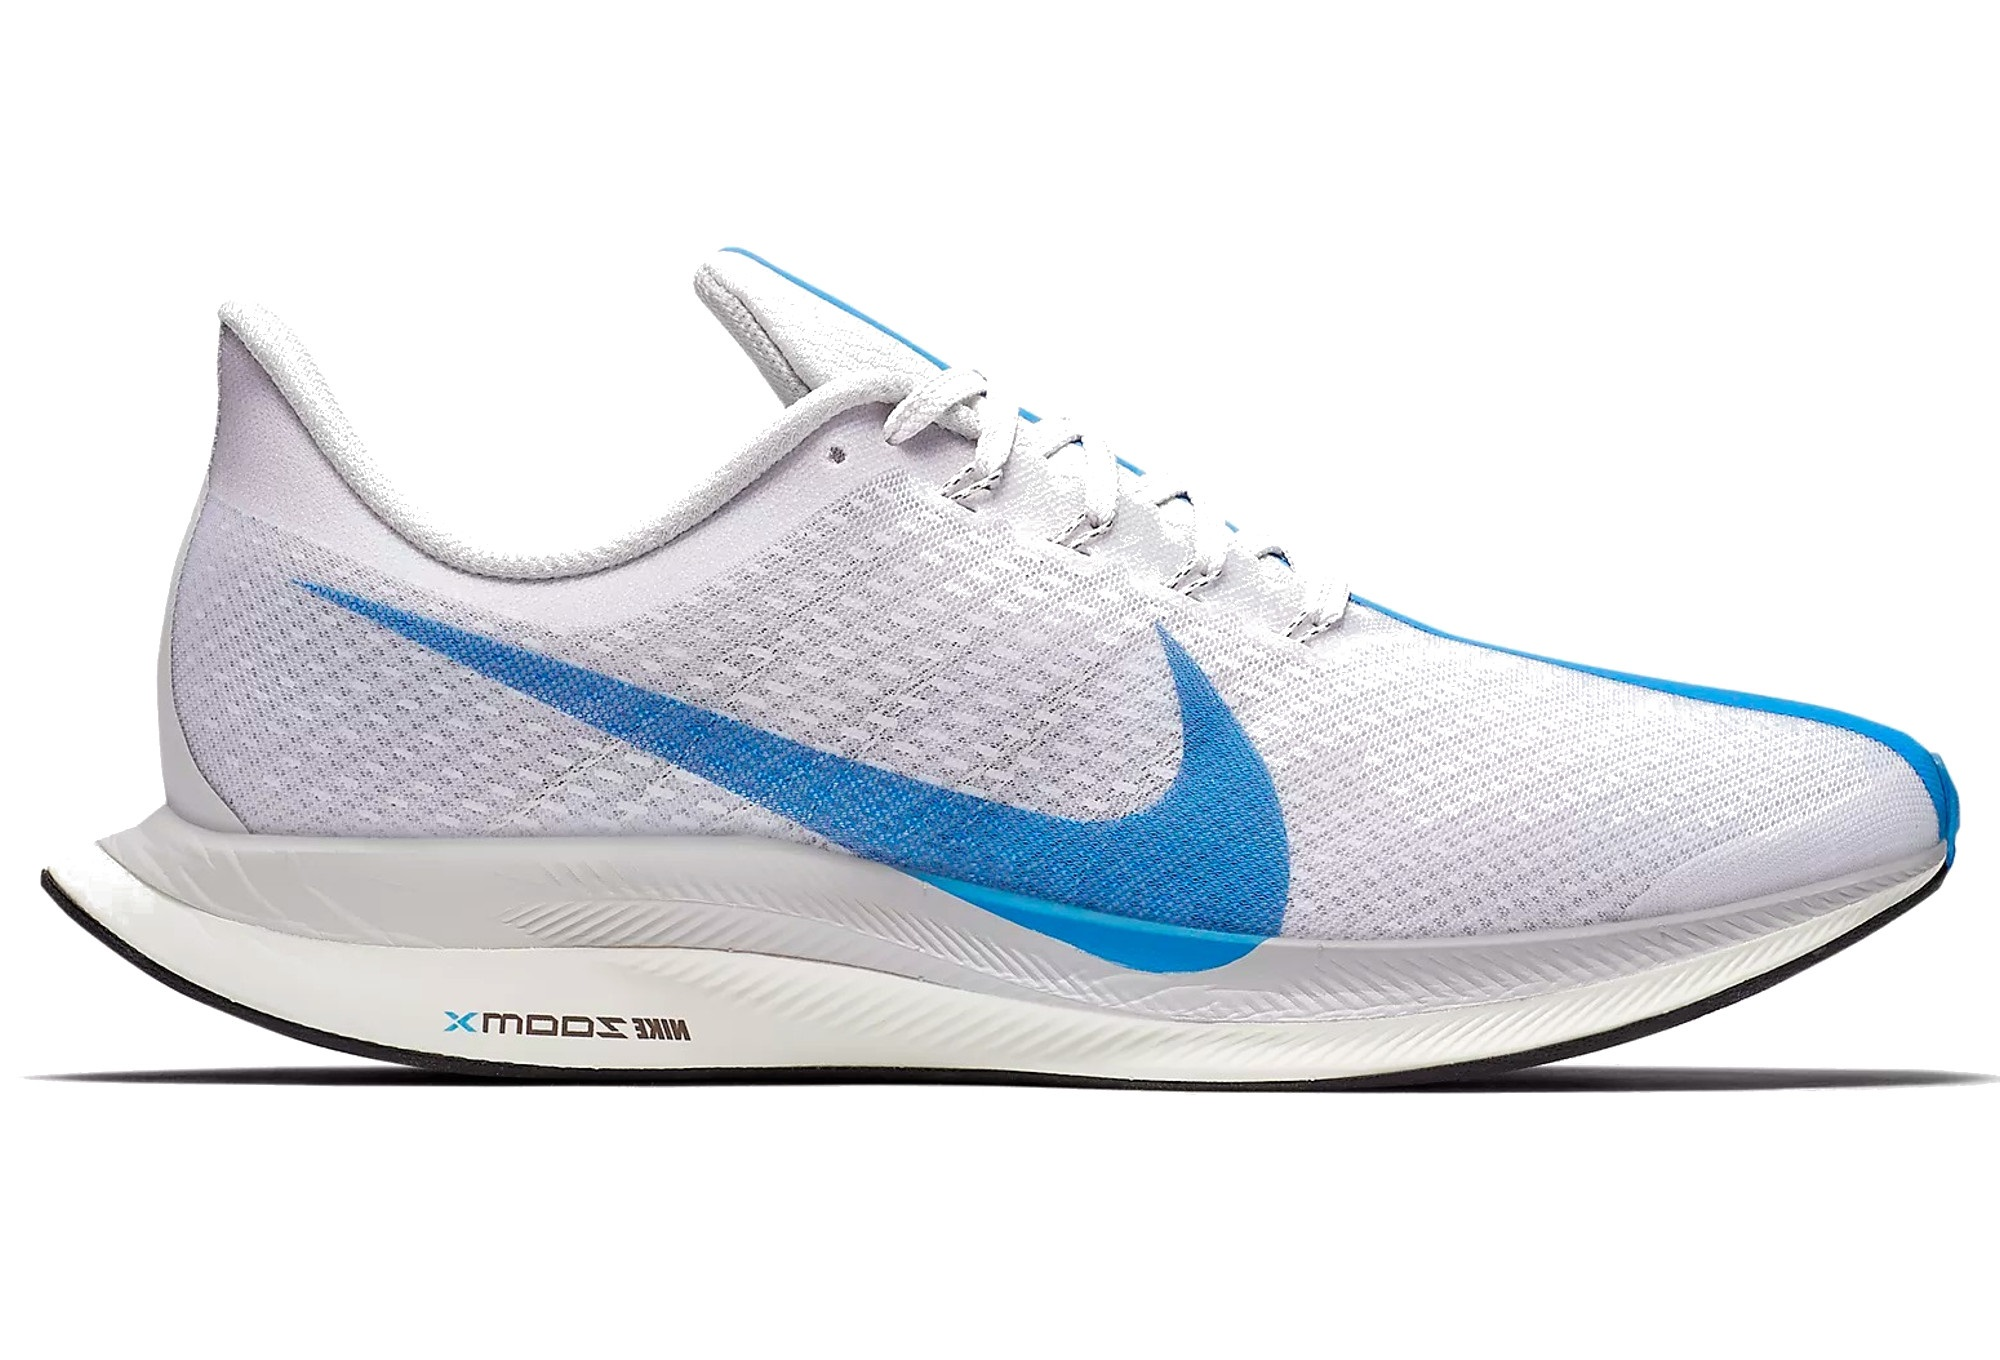 new york ca5fc 37f4b Chaussures de Running Nike Zoom Pegasus Turbo Blanc   Bleu